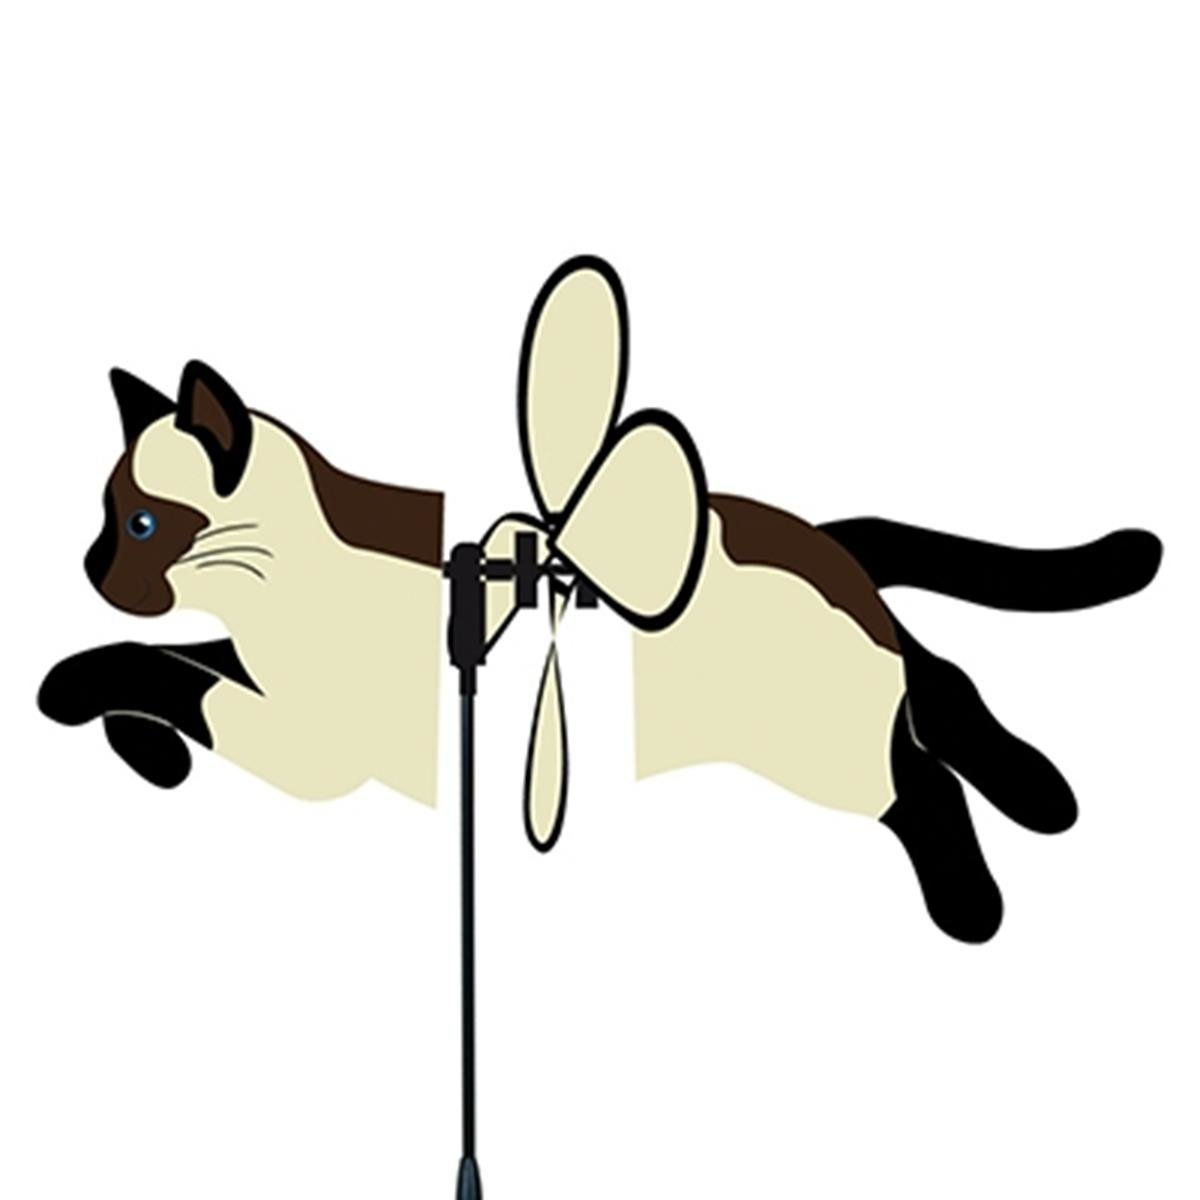 wind-garden-petite-flying-spinner-siamese-cat